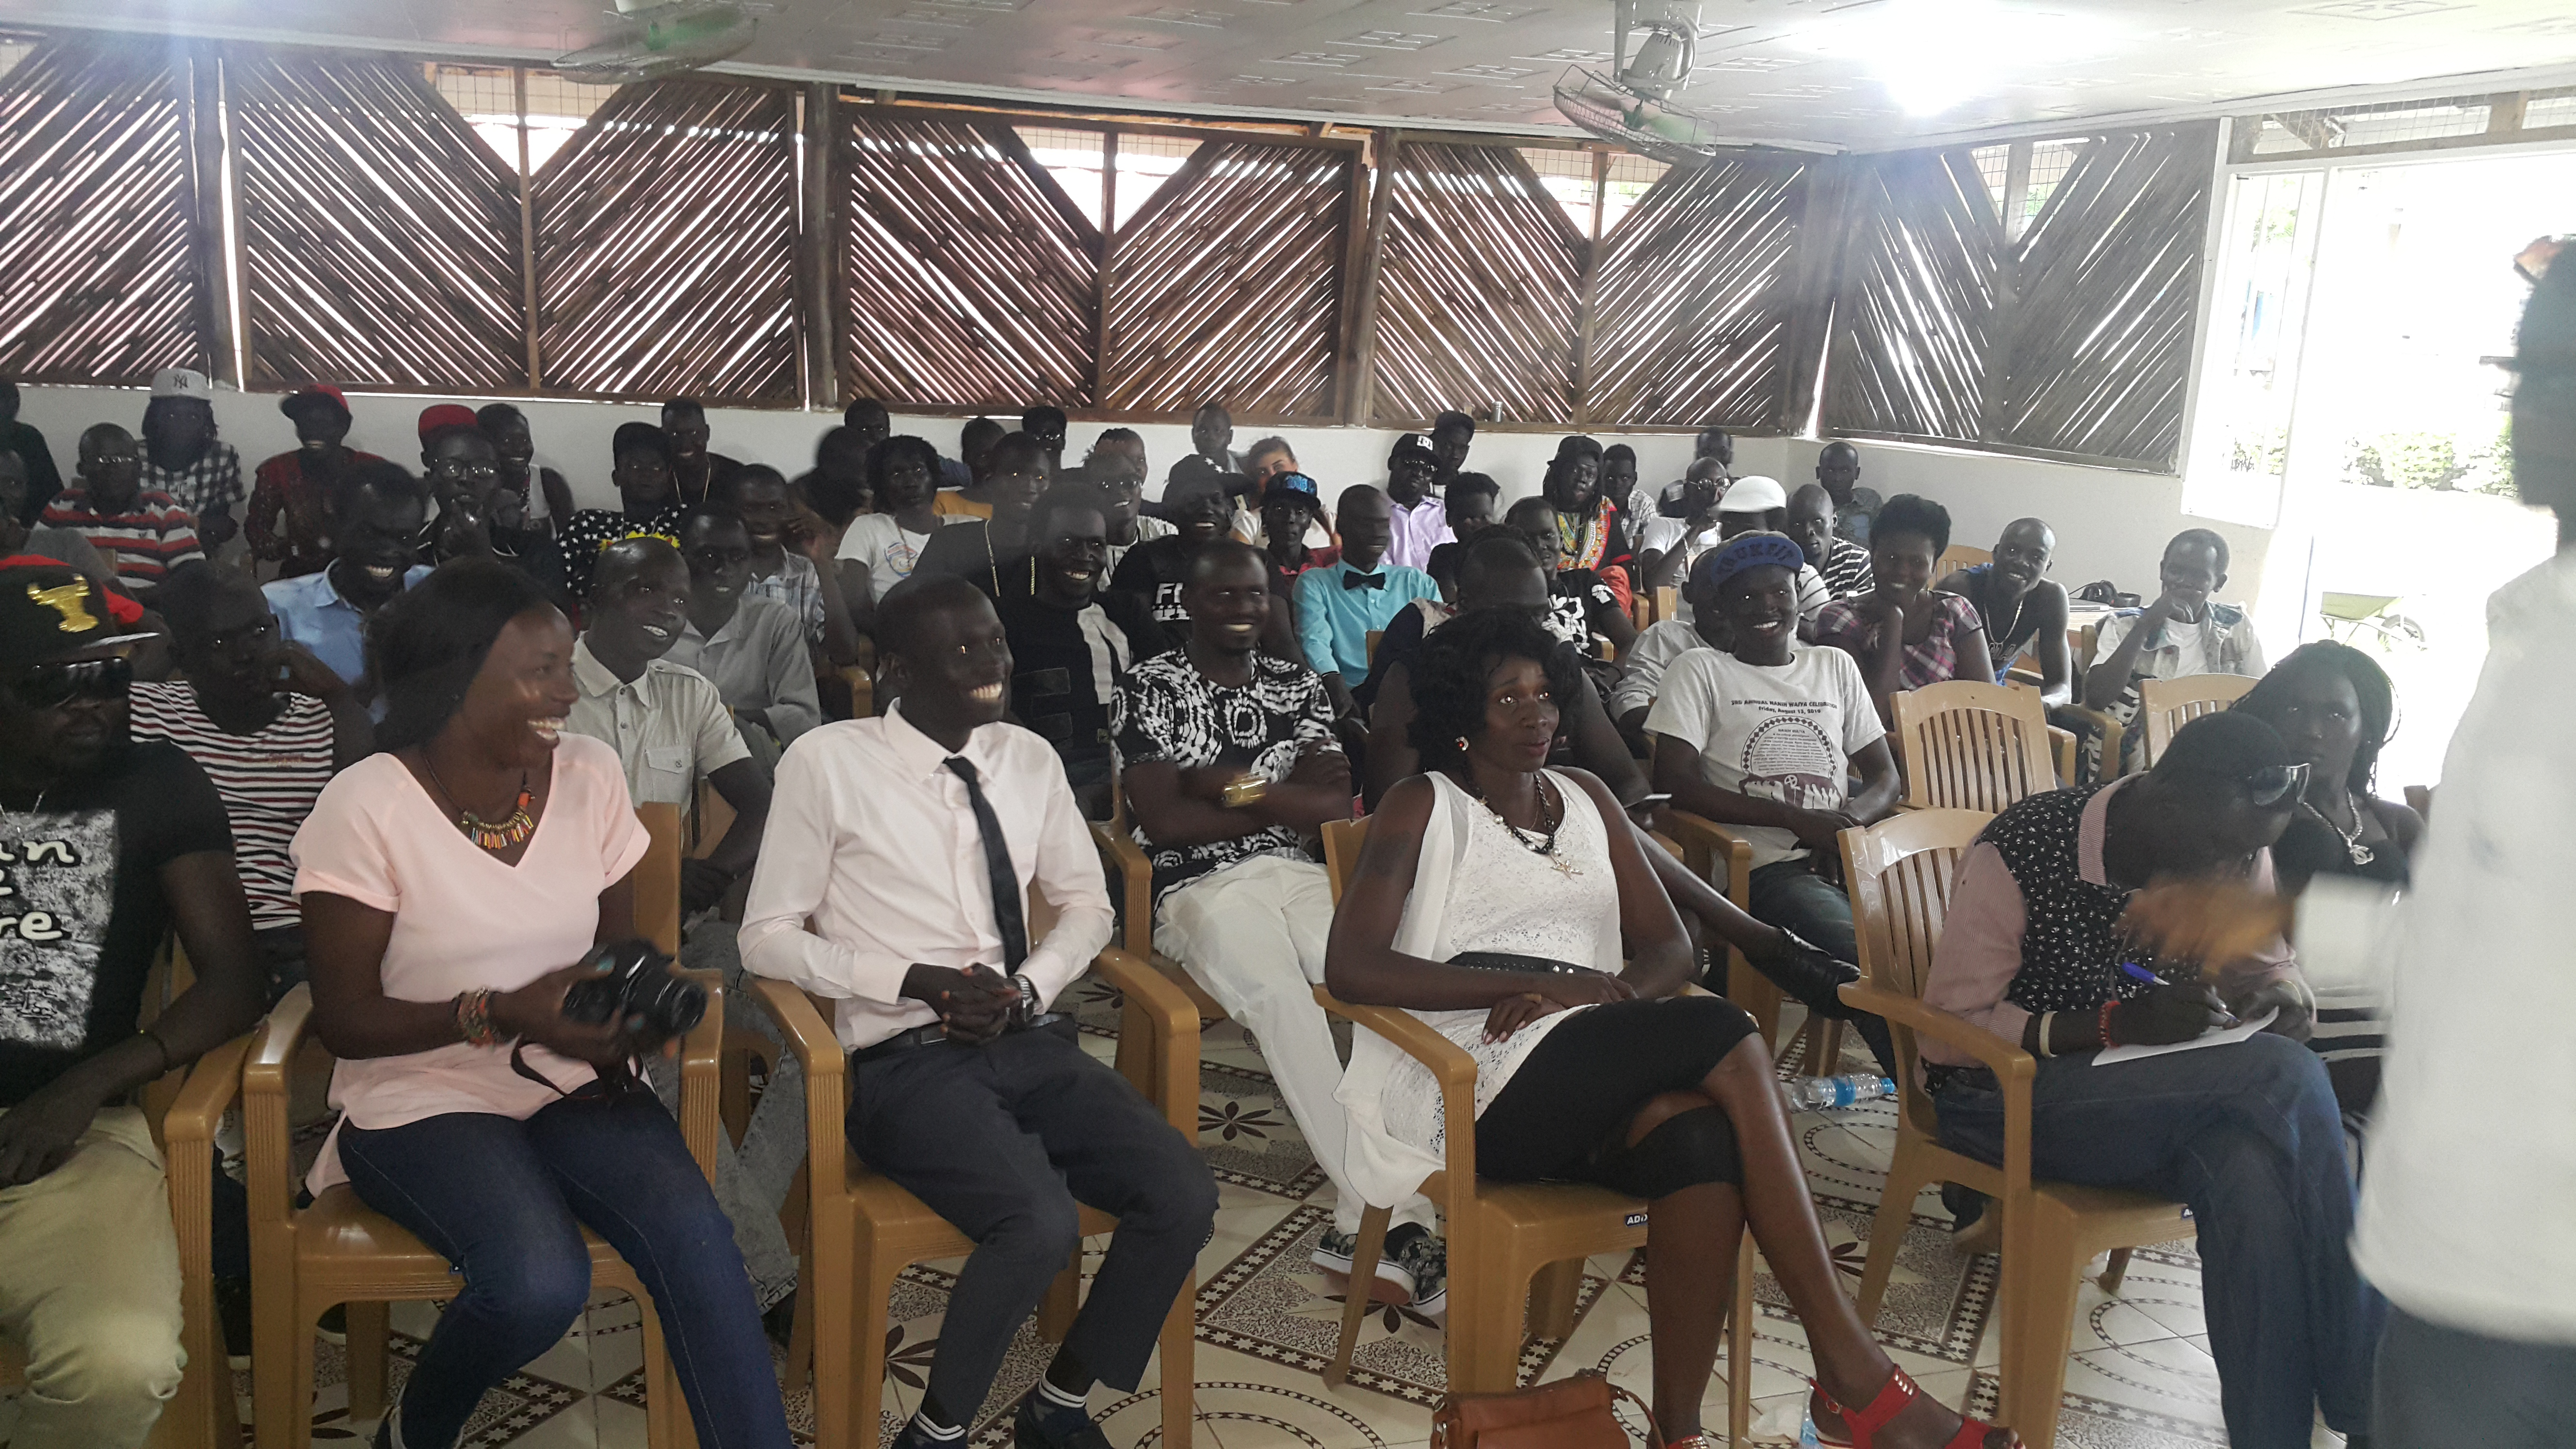 Over 50 celebrities meet for the first time in Juba [SEE PICS]